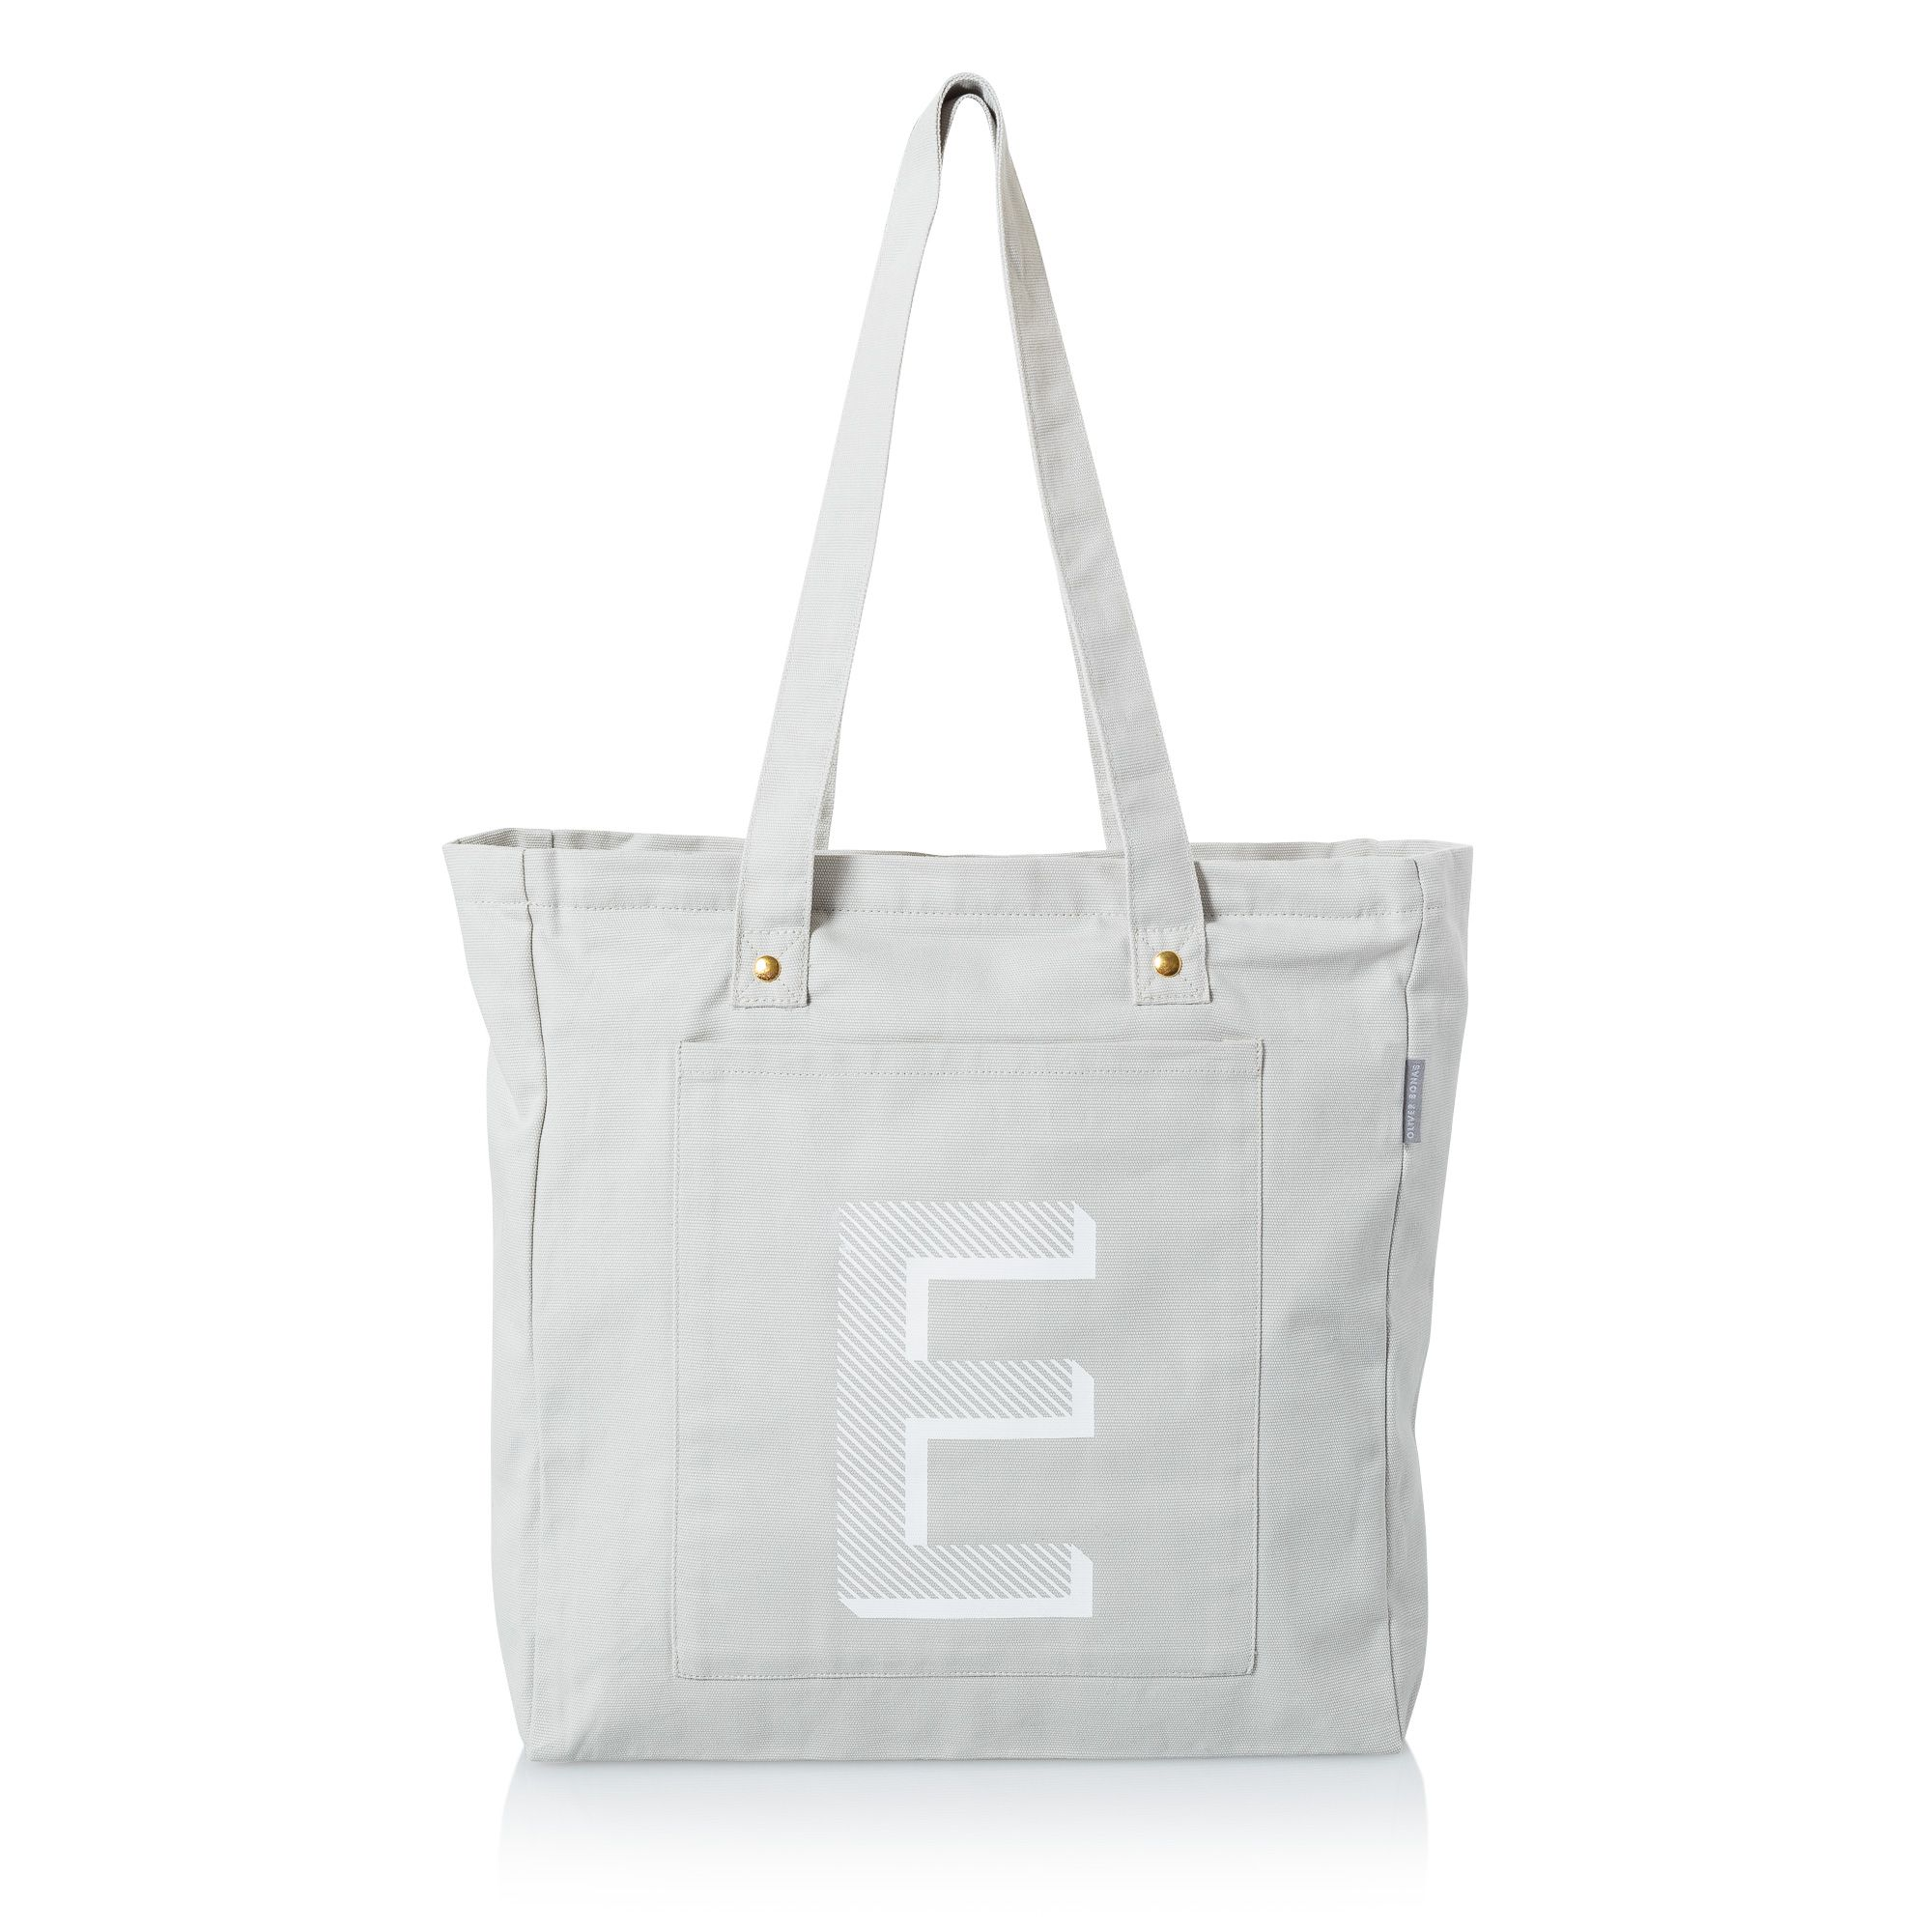 49395fe5a Buy the Alphabet Shopper Bag at Oliver Bonas. Personalise your Bags. Enjoy  free worldwide standard delivery for orders over £50.